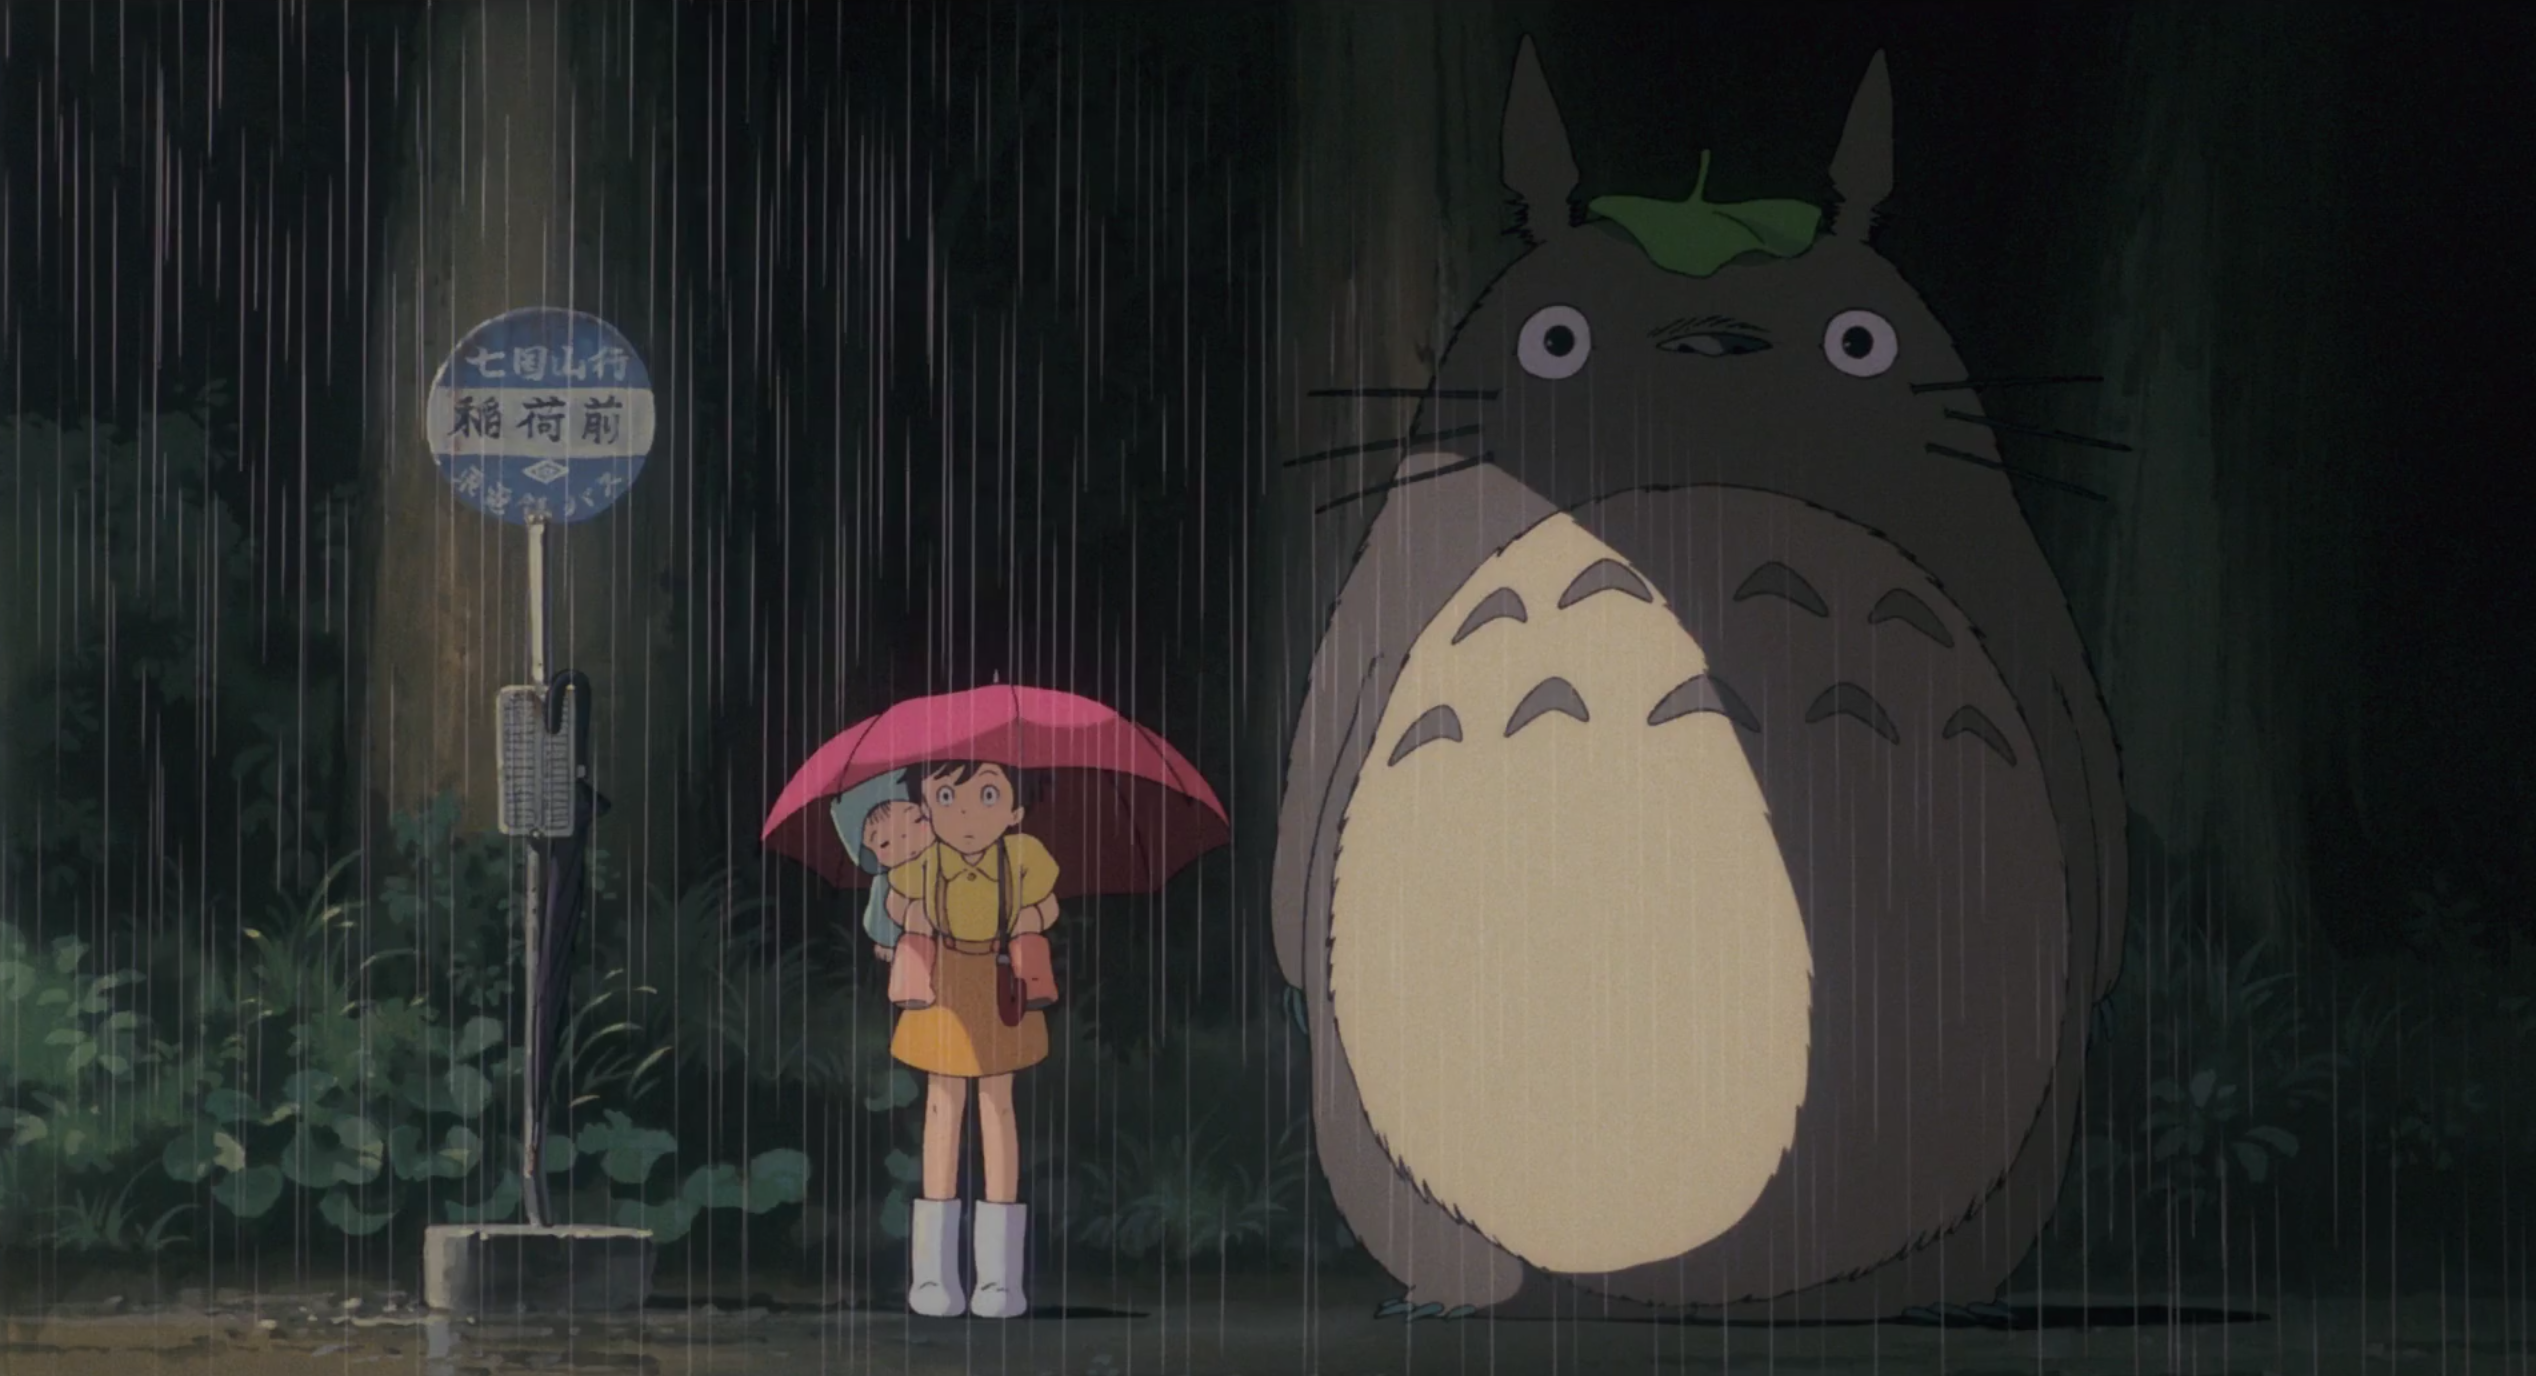 Screenshot of the sisters and Totoro at a bus stop